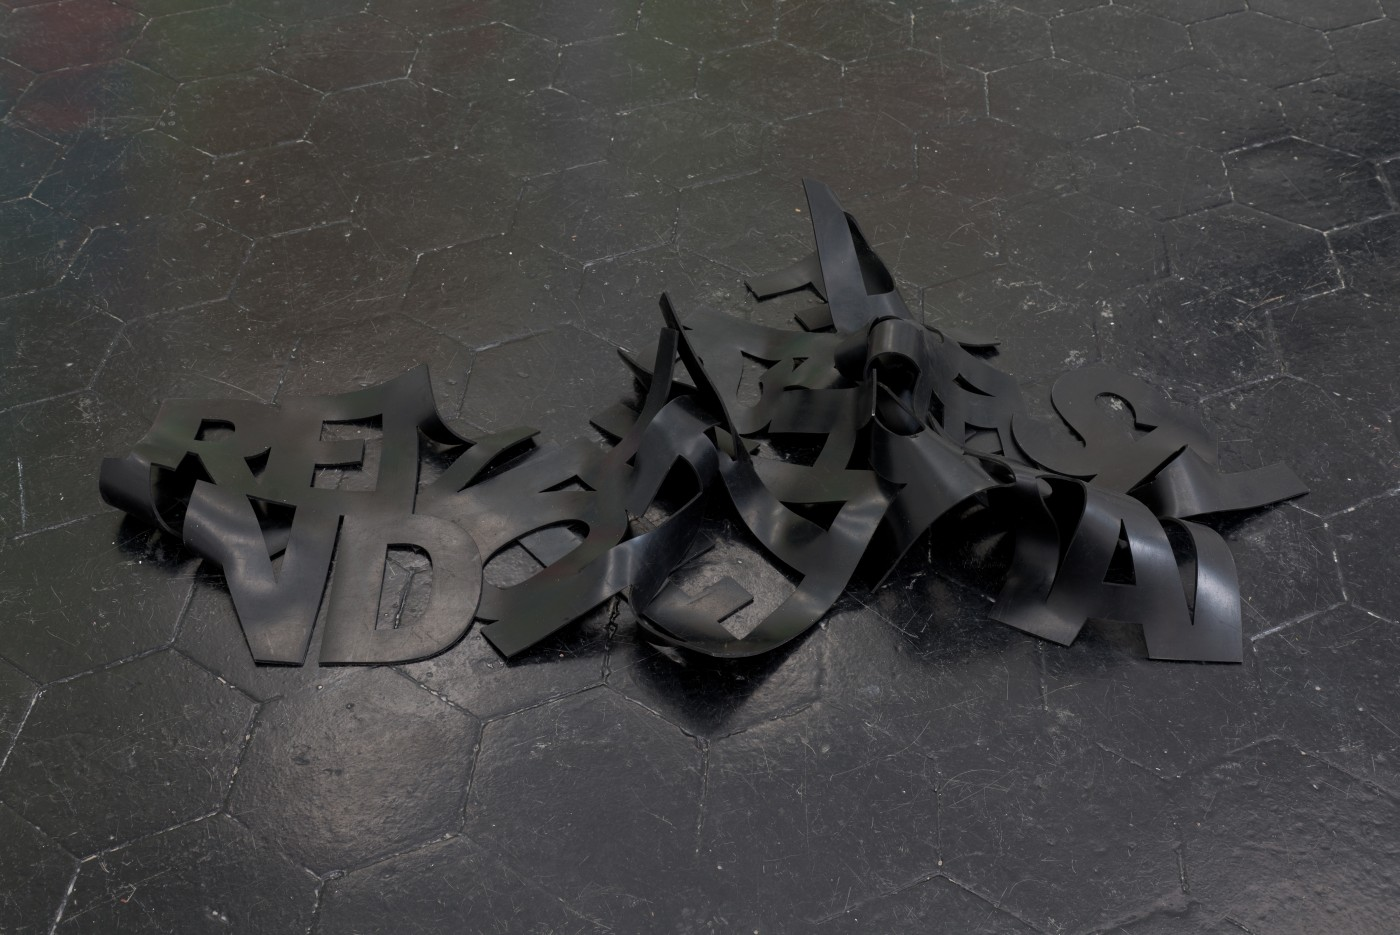 IN ESCROW  Remove the Outside and the Inside Remains</I>, 2016  Industrial grade rubber  Approx. 60 x 120 cm / 23.6 x 47.2 in  DENA YAGO